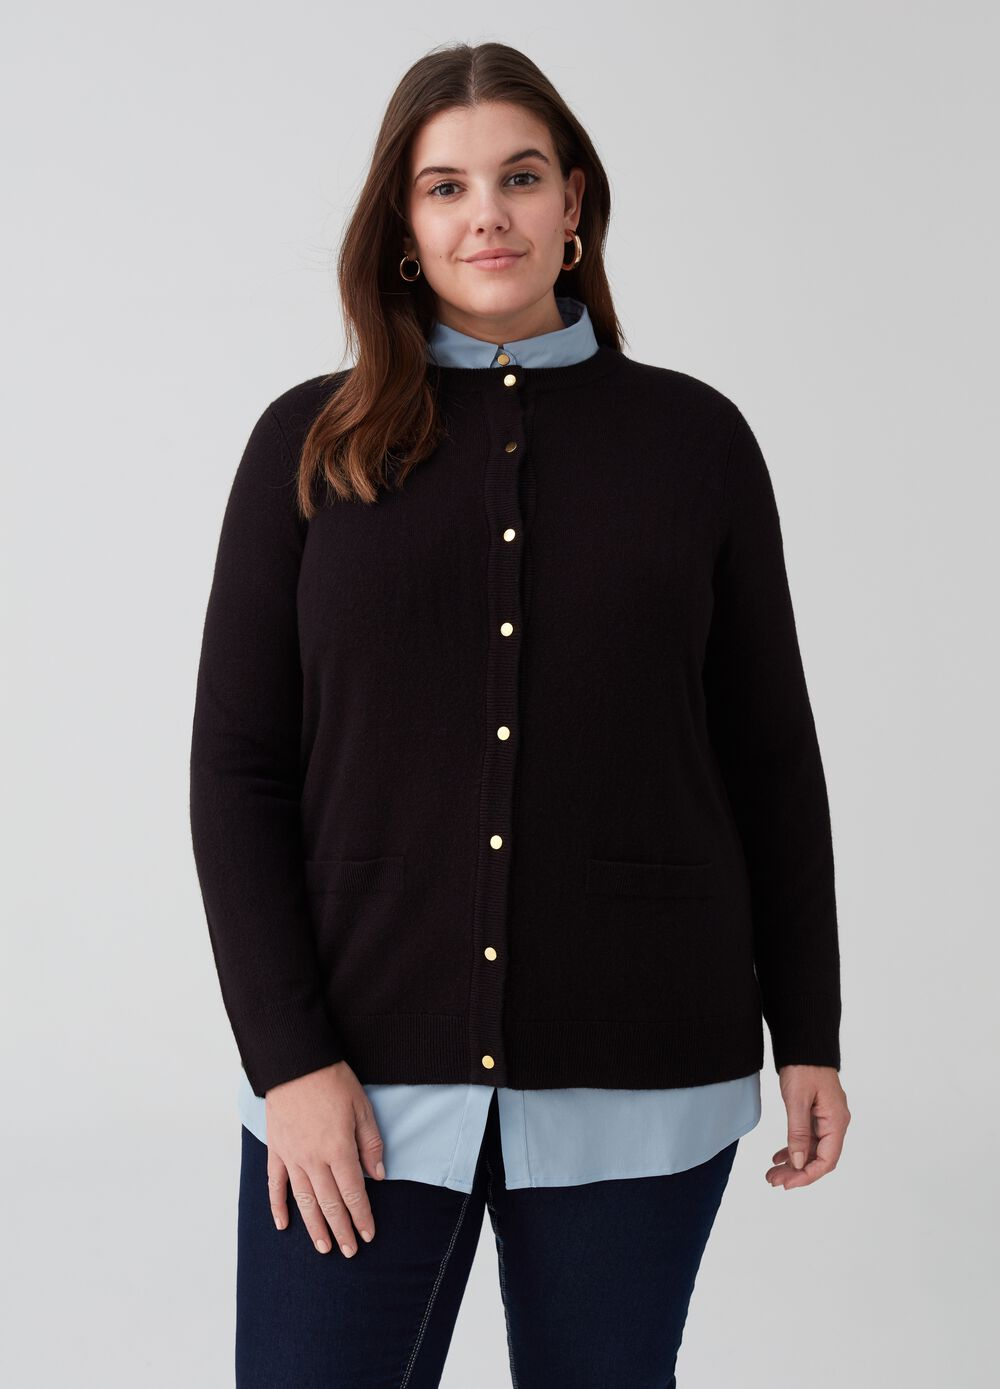 Curvy knit cardigan with pockets